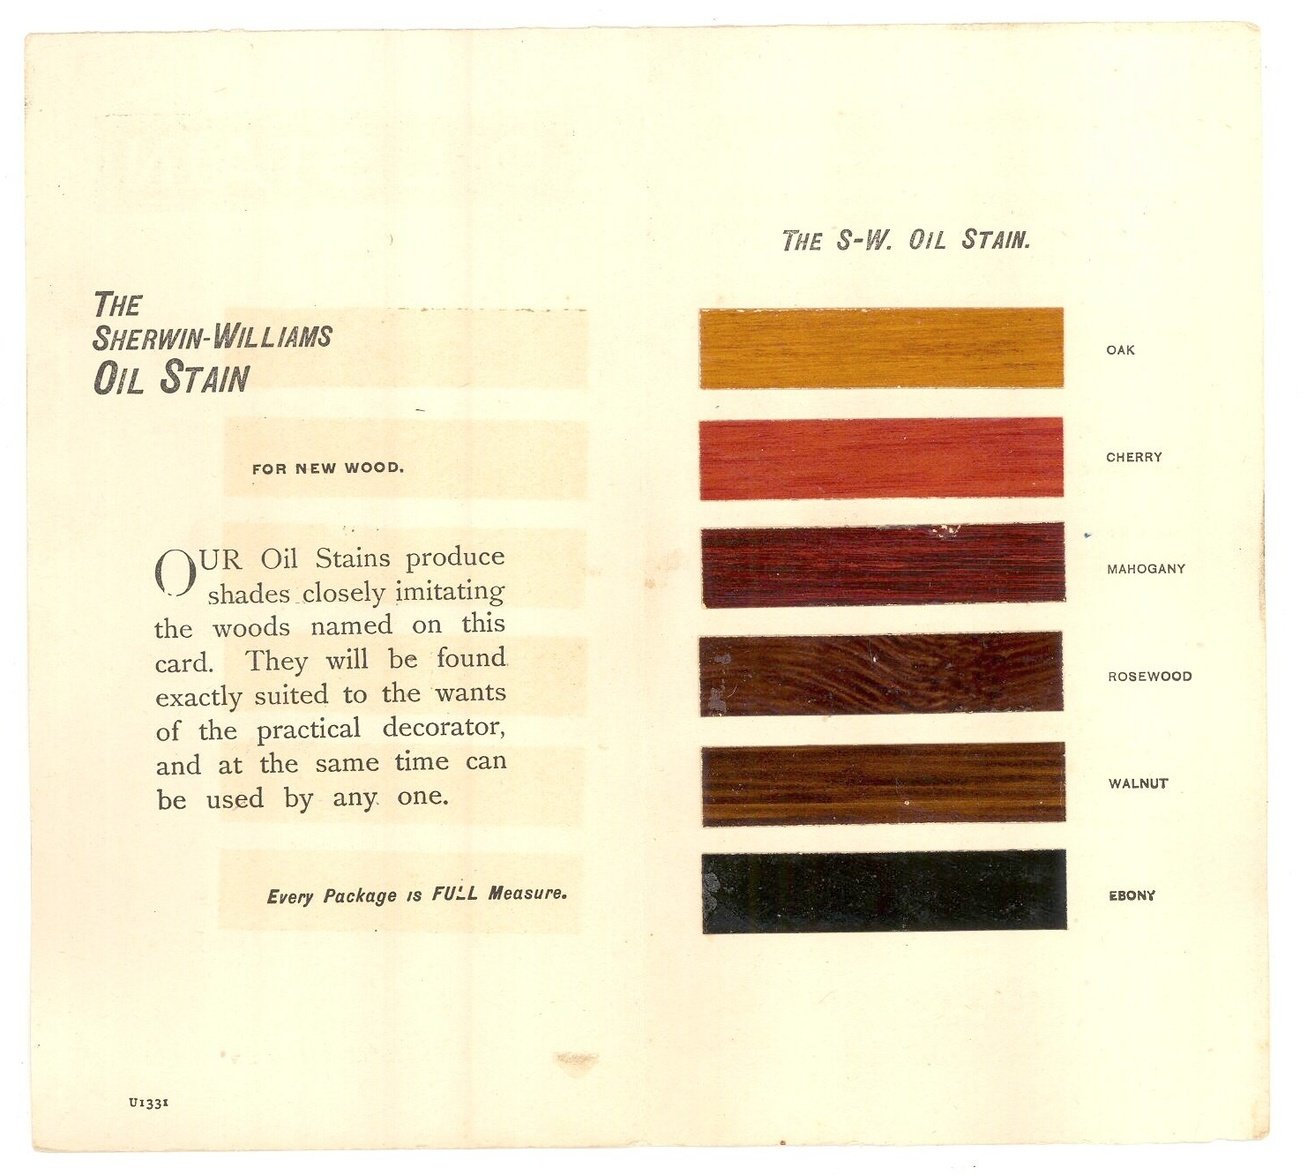 Sherwin Williams 1931 oil stain sample chart advertising Pearson Bros Keene NH image 2